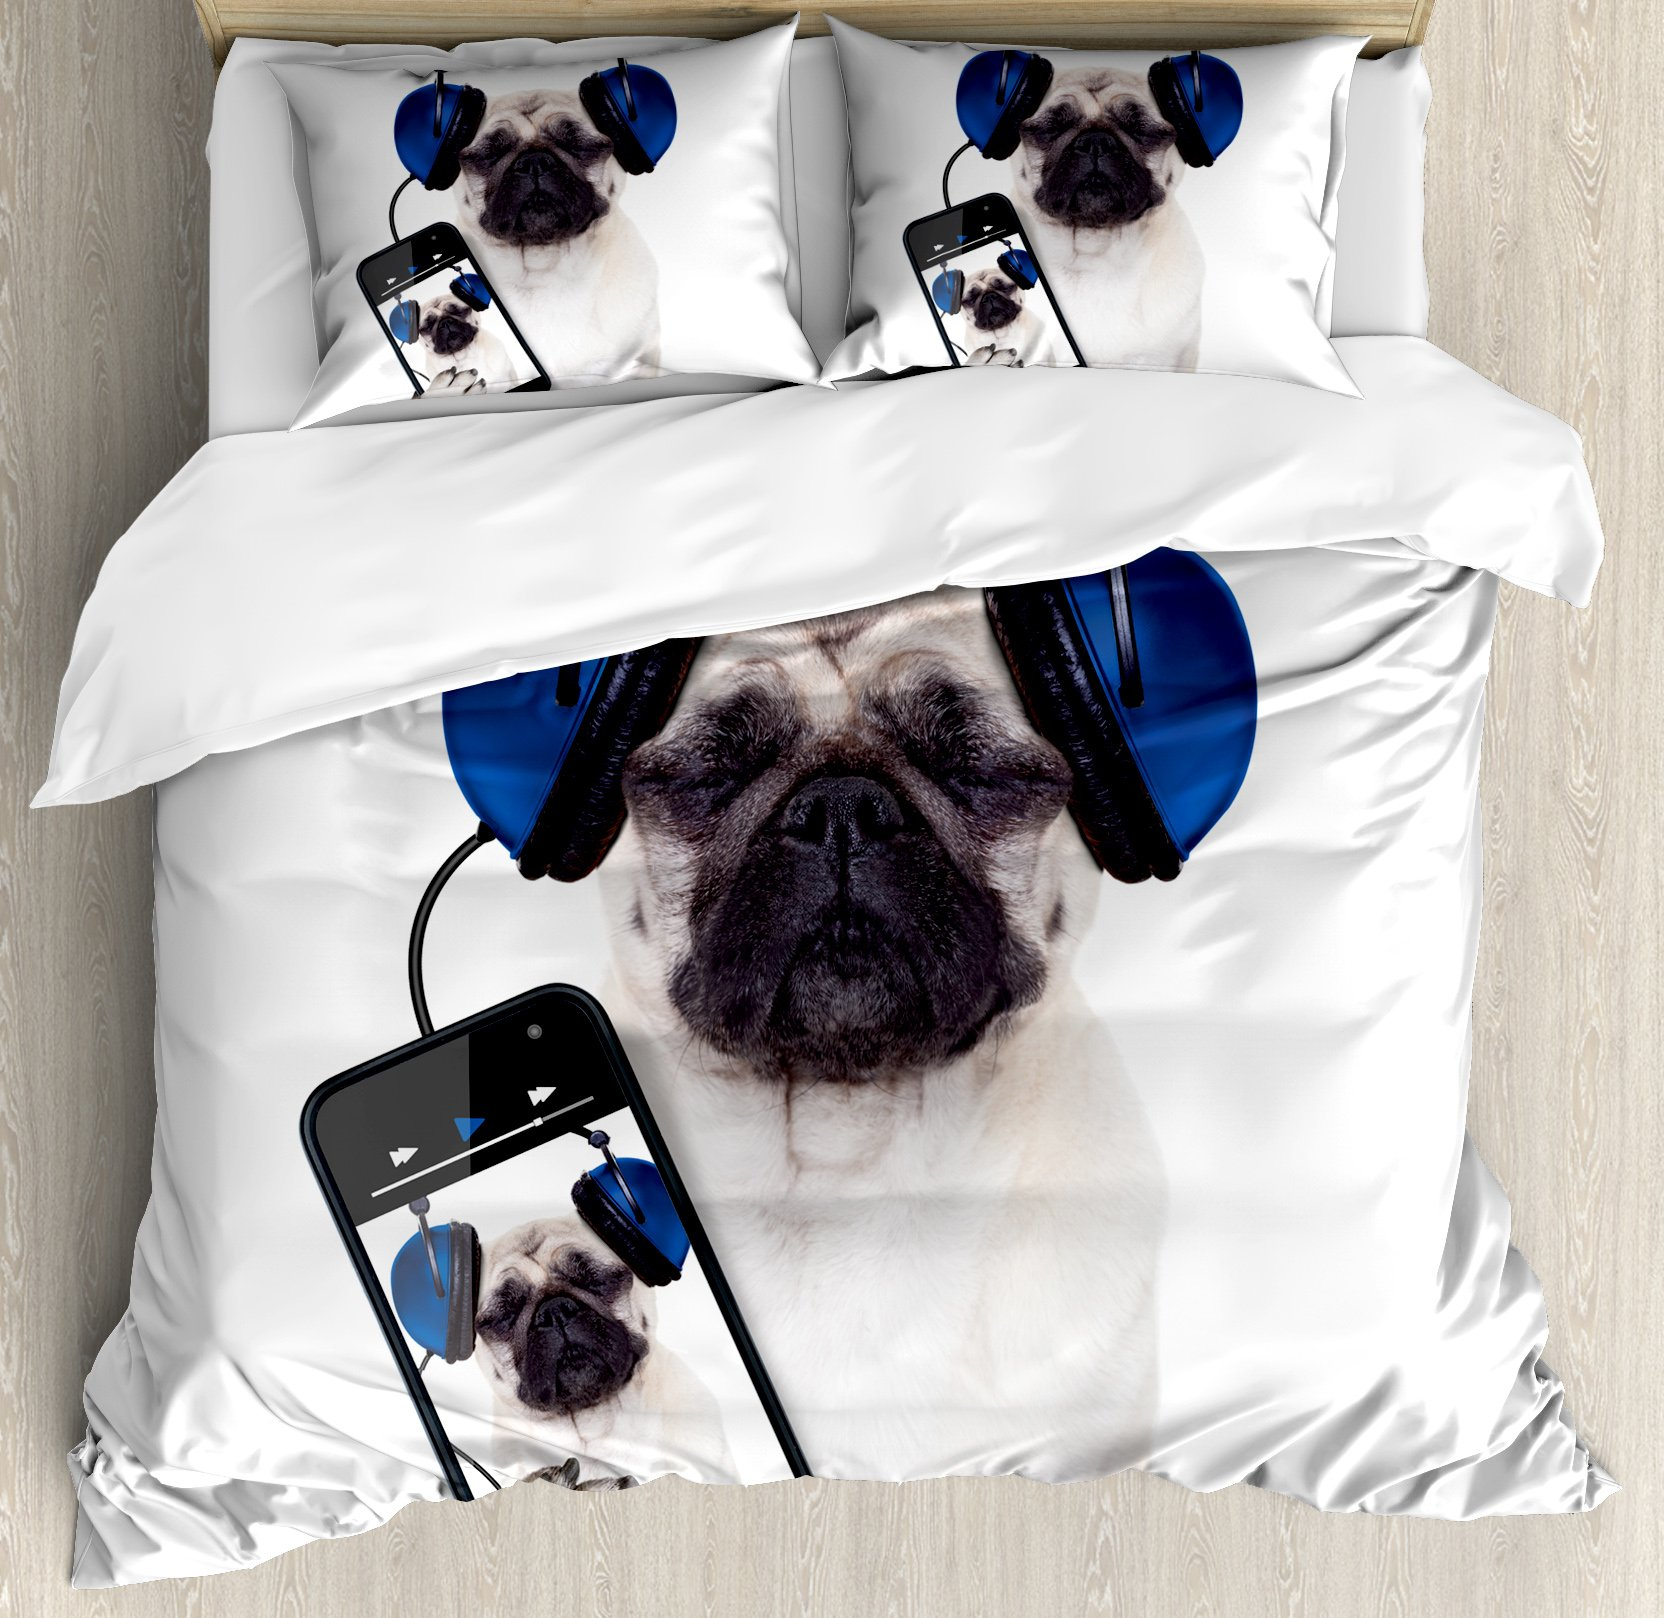 Pug Duvet Cover Set Queen Size by Ambesonne, Dog Listening Music on the Smartphone Groovy Cool Headphones Animal Funny Image, Decorative 3 Piece Bedding Set with 2 Pillow Shams, Navy Blue Black